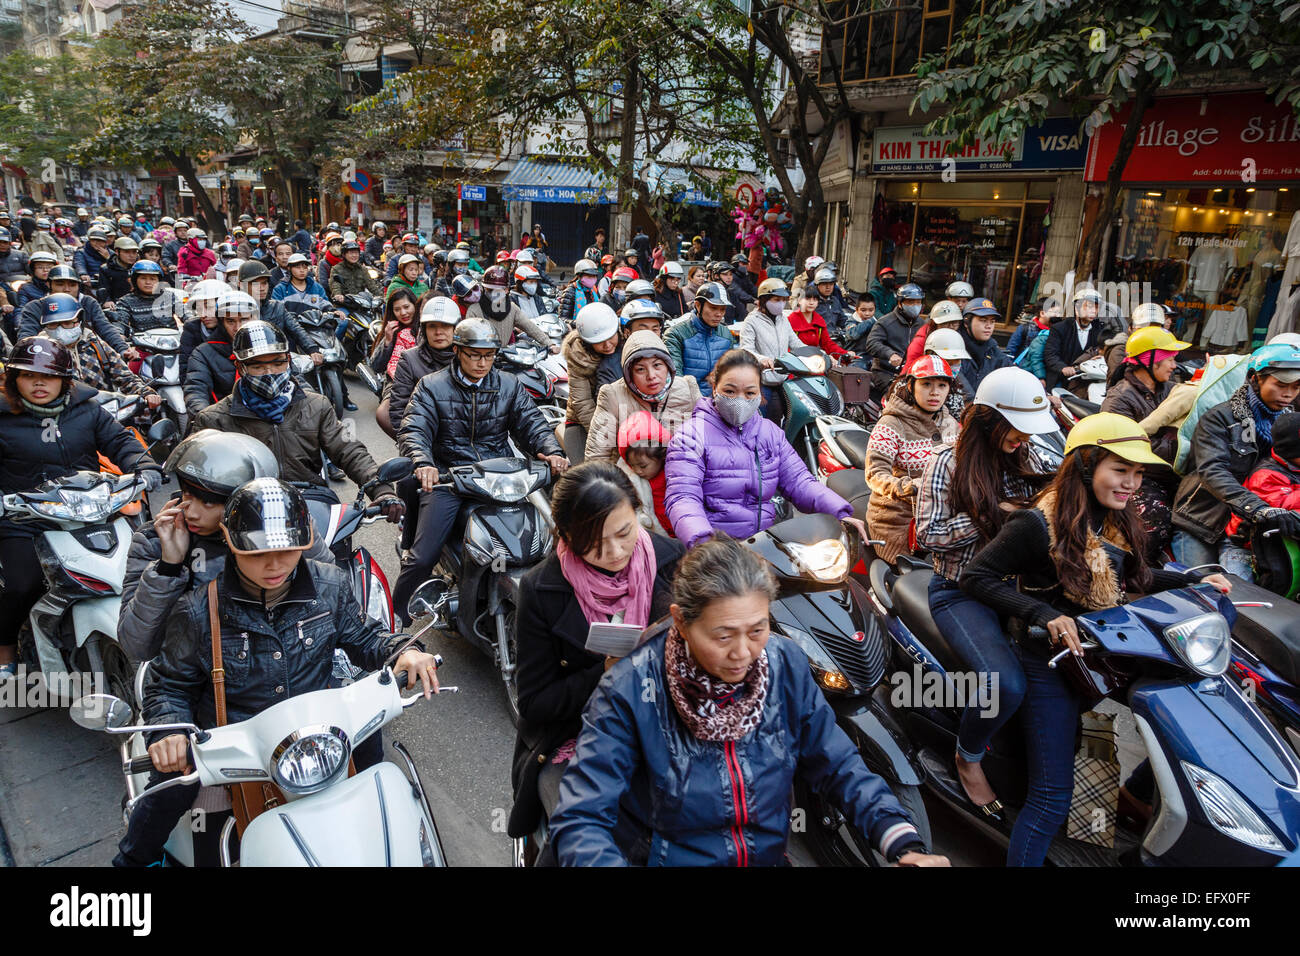 Busy traffic in the old quarter, Hanoi, Vietnam. - Stock Image